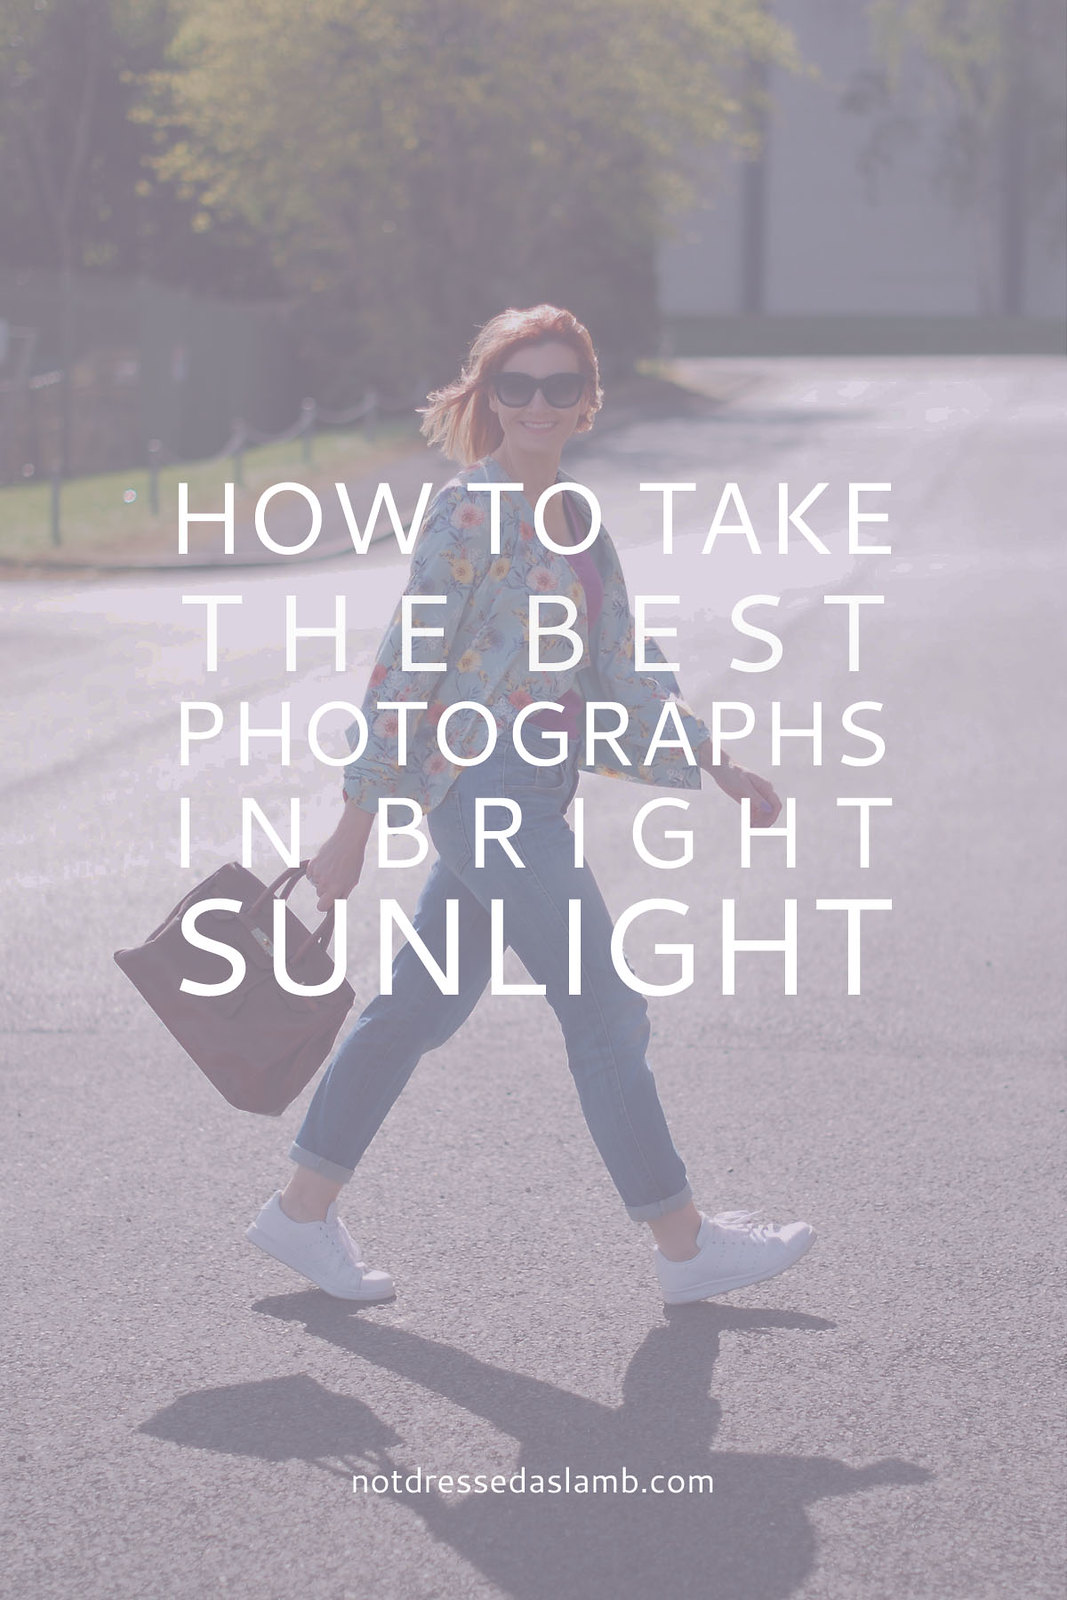 Photo Tips: How to Take the Best Photographs in Bright Sunlight | Not Dressed As Lamb